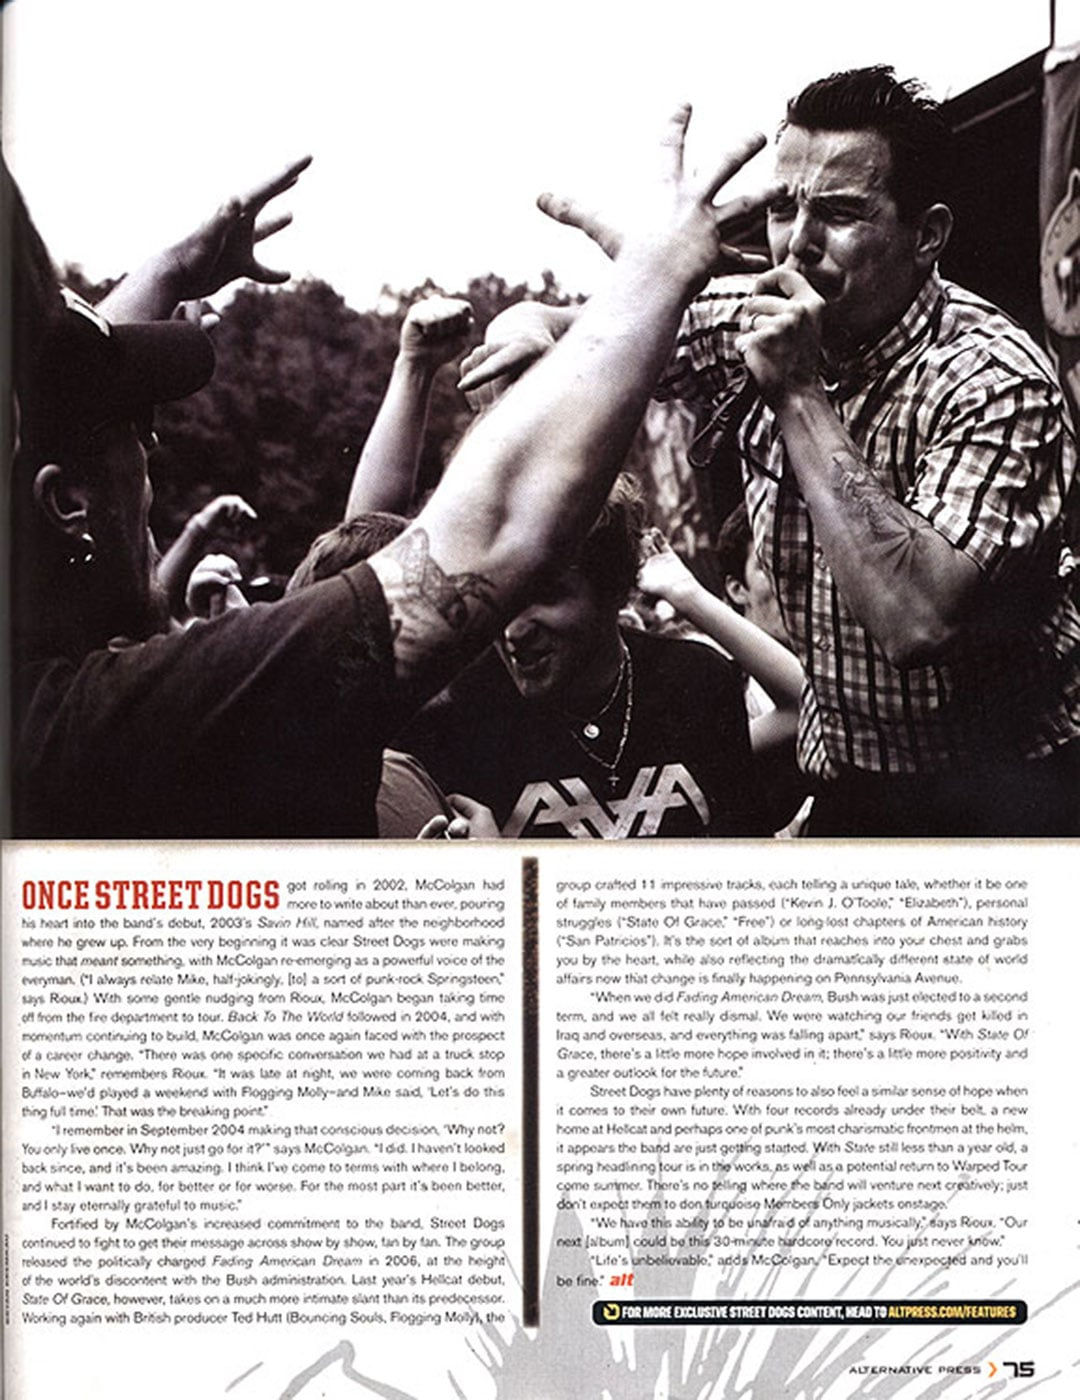 Tearsheets: Alternative Press Magazine - Street Dogs